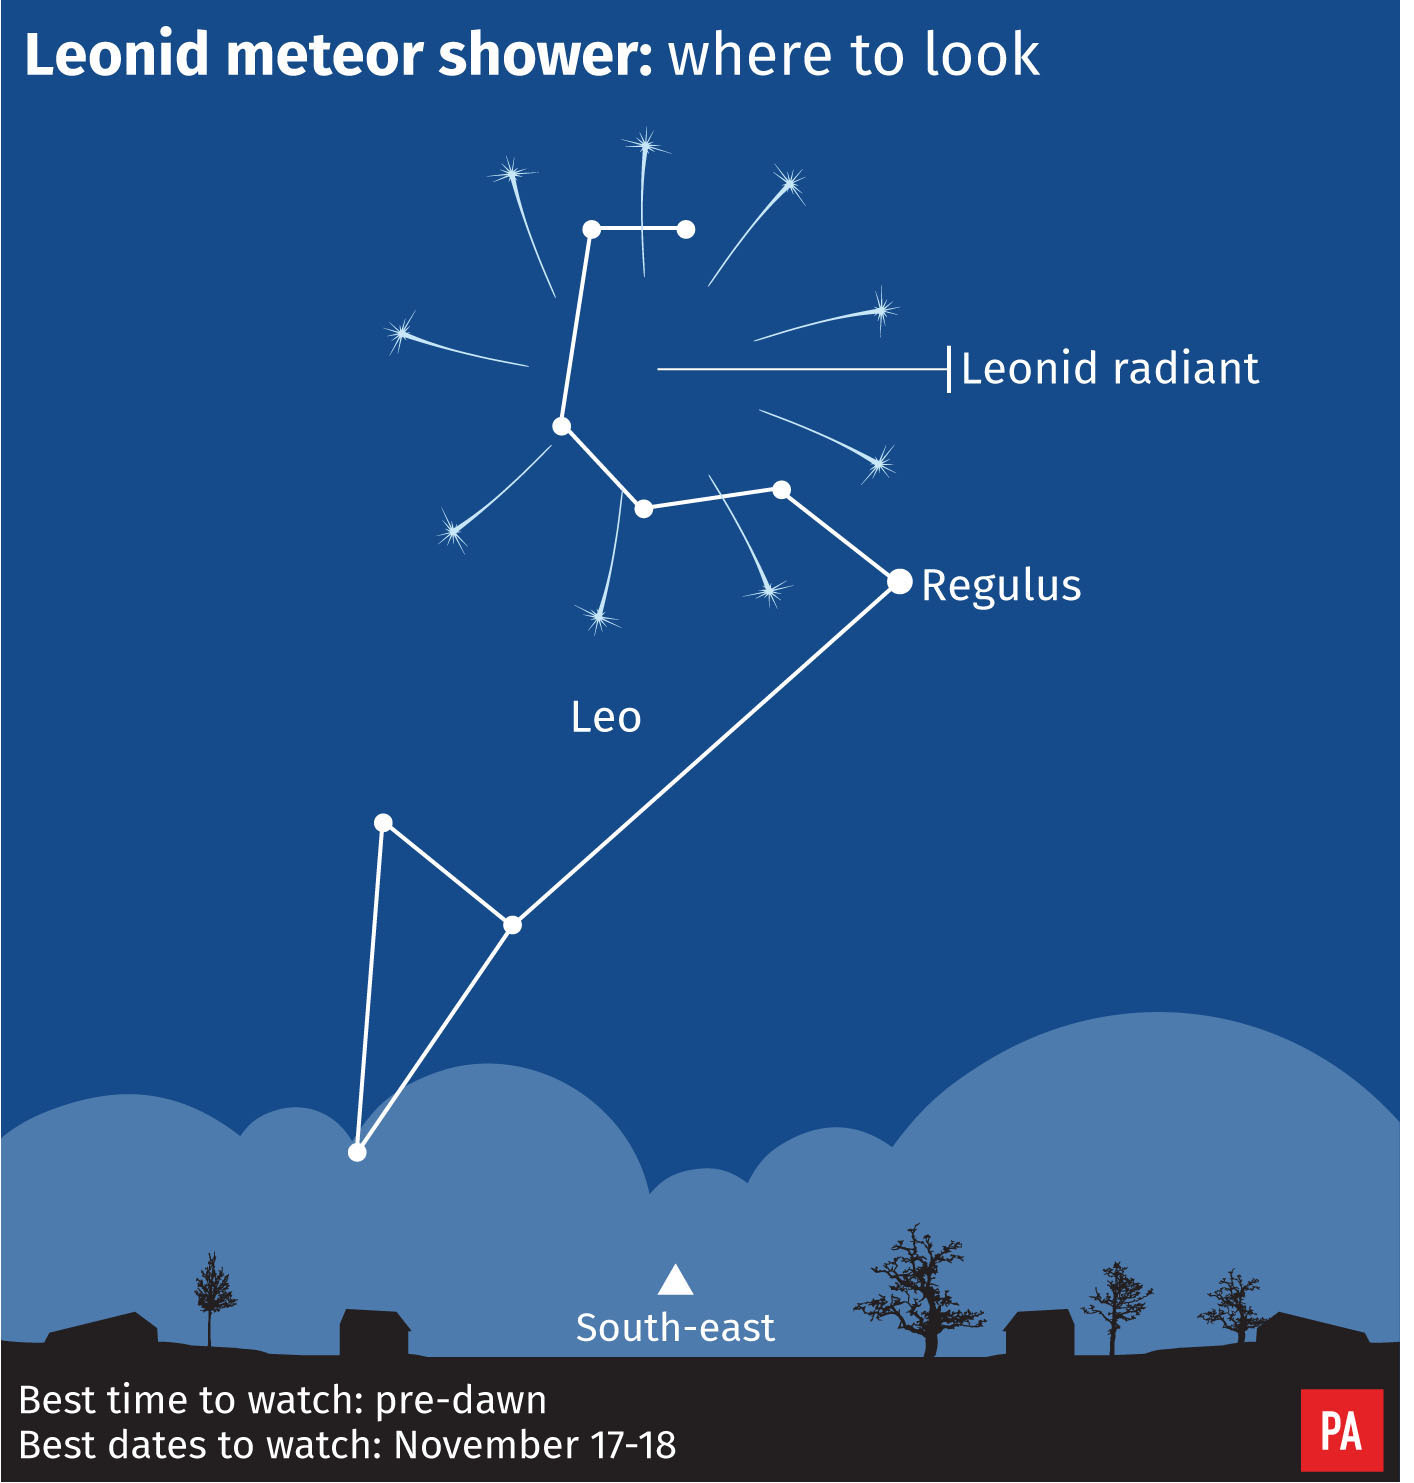 The Leonid meteor shower will be visible above Canada this weekend